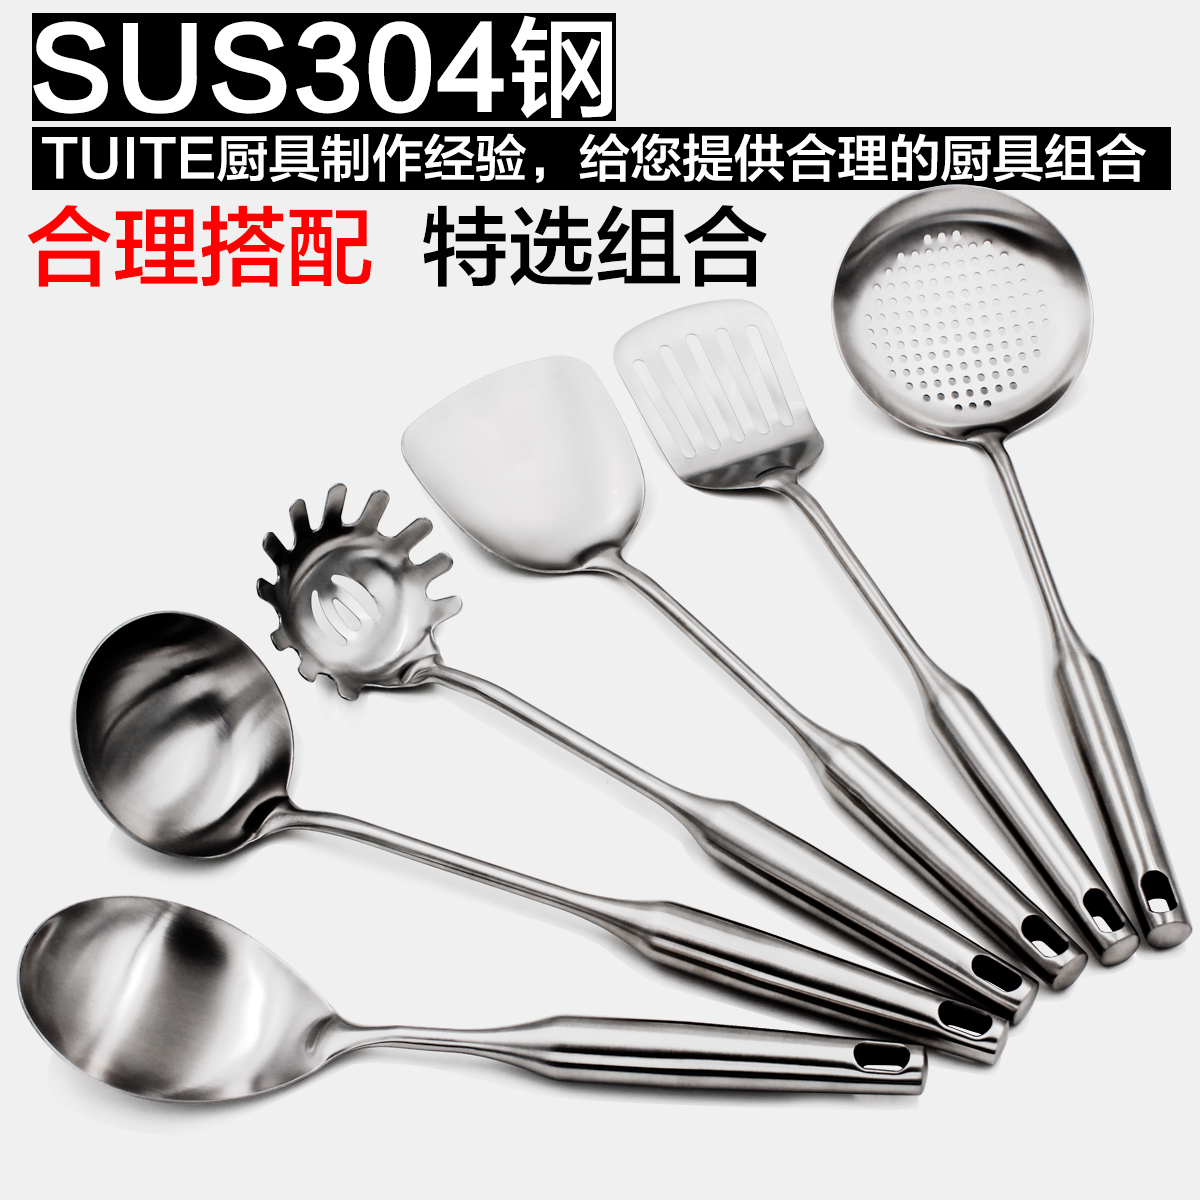 Luxury stainless steel kitchenware qi jiantao kitchen spoon spatula suit a full scoop shovel chaoshao tablespoon colander kitchen supplies